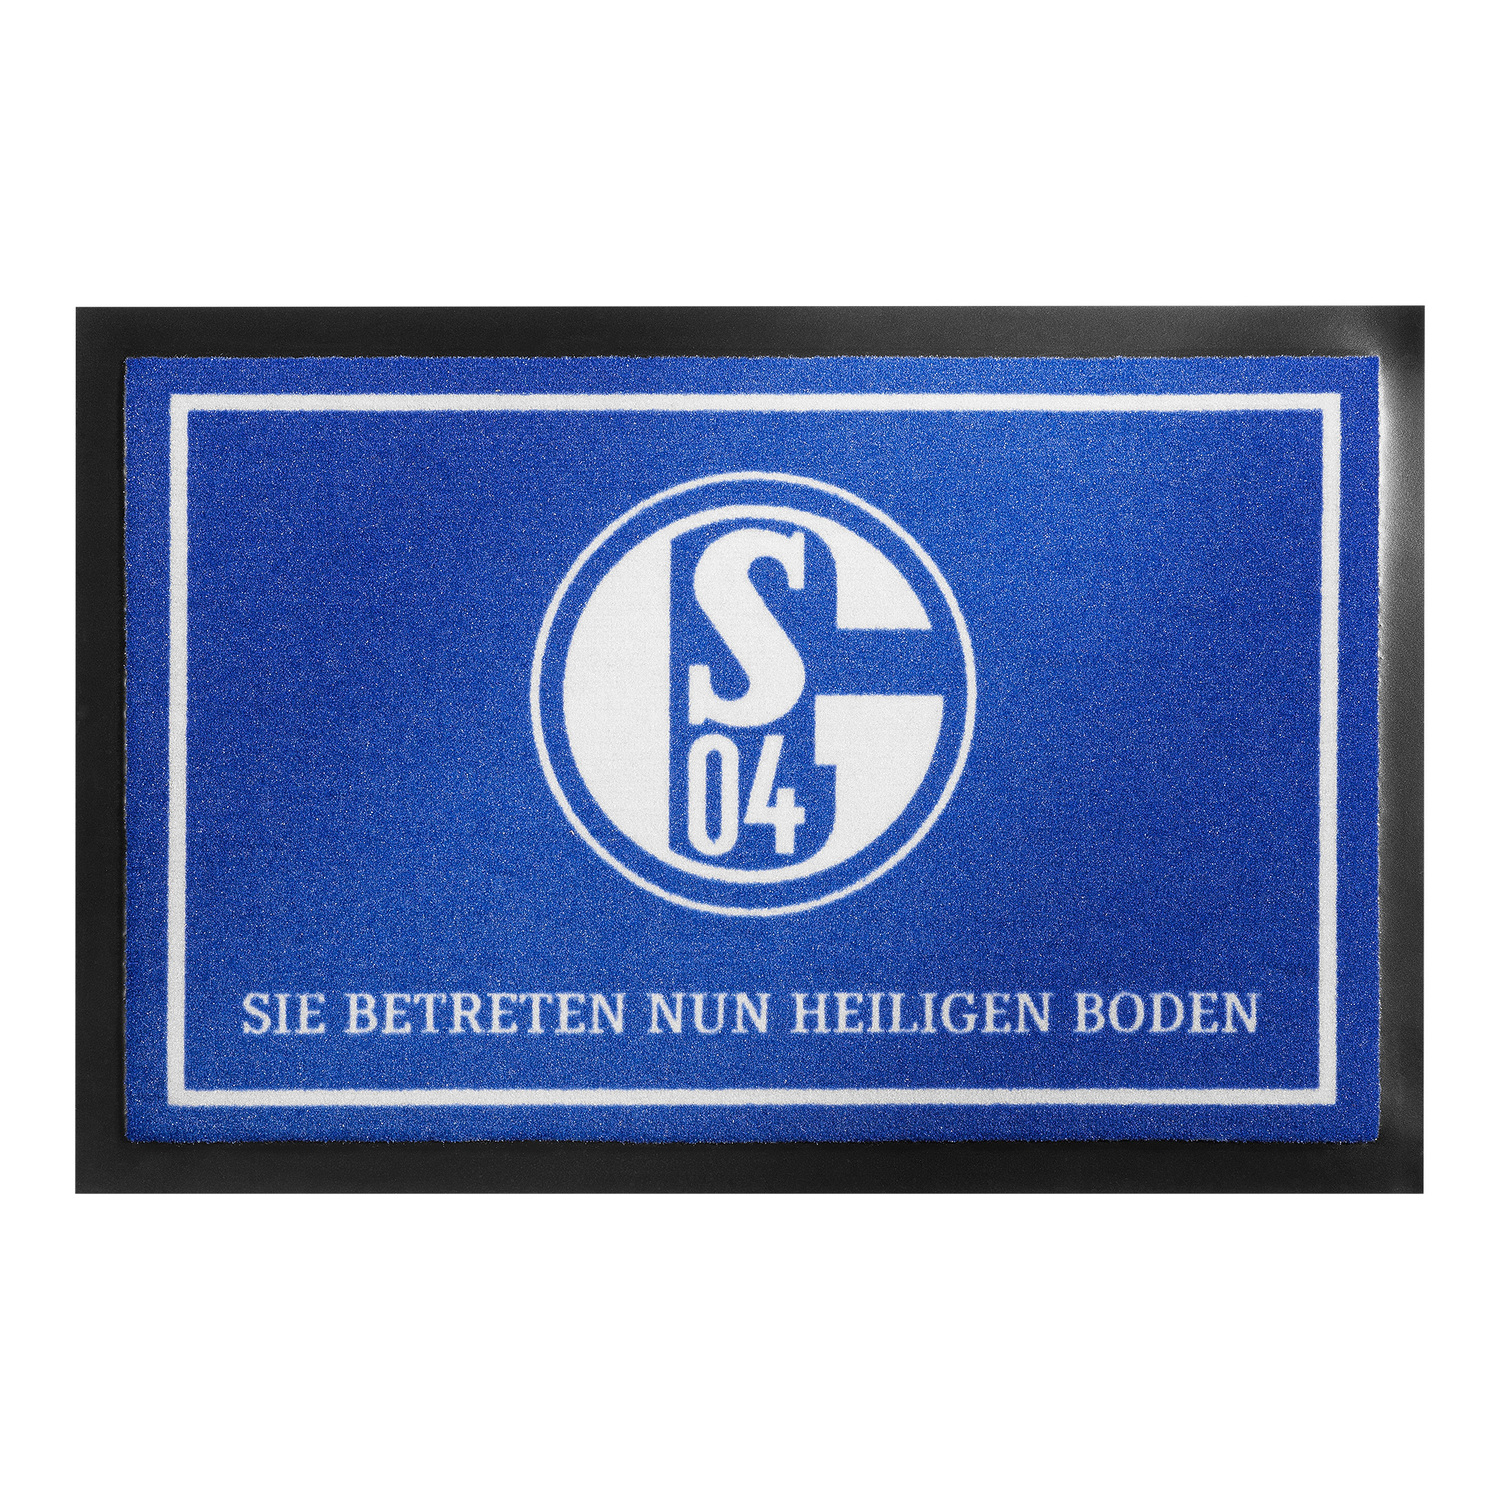 fc schalke 04 fu matte heiliger boden 40x60cm. Black Bedroom Furniture Sets. Home Design Ideas